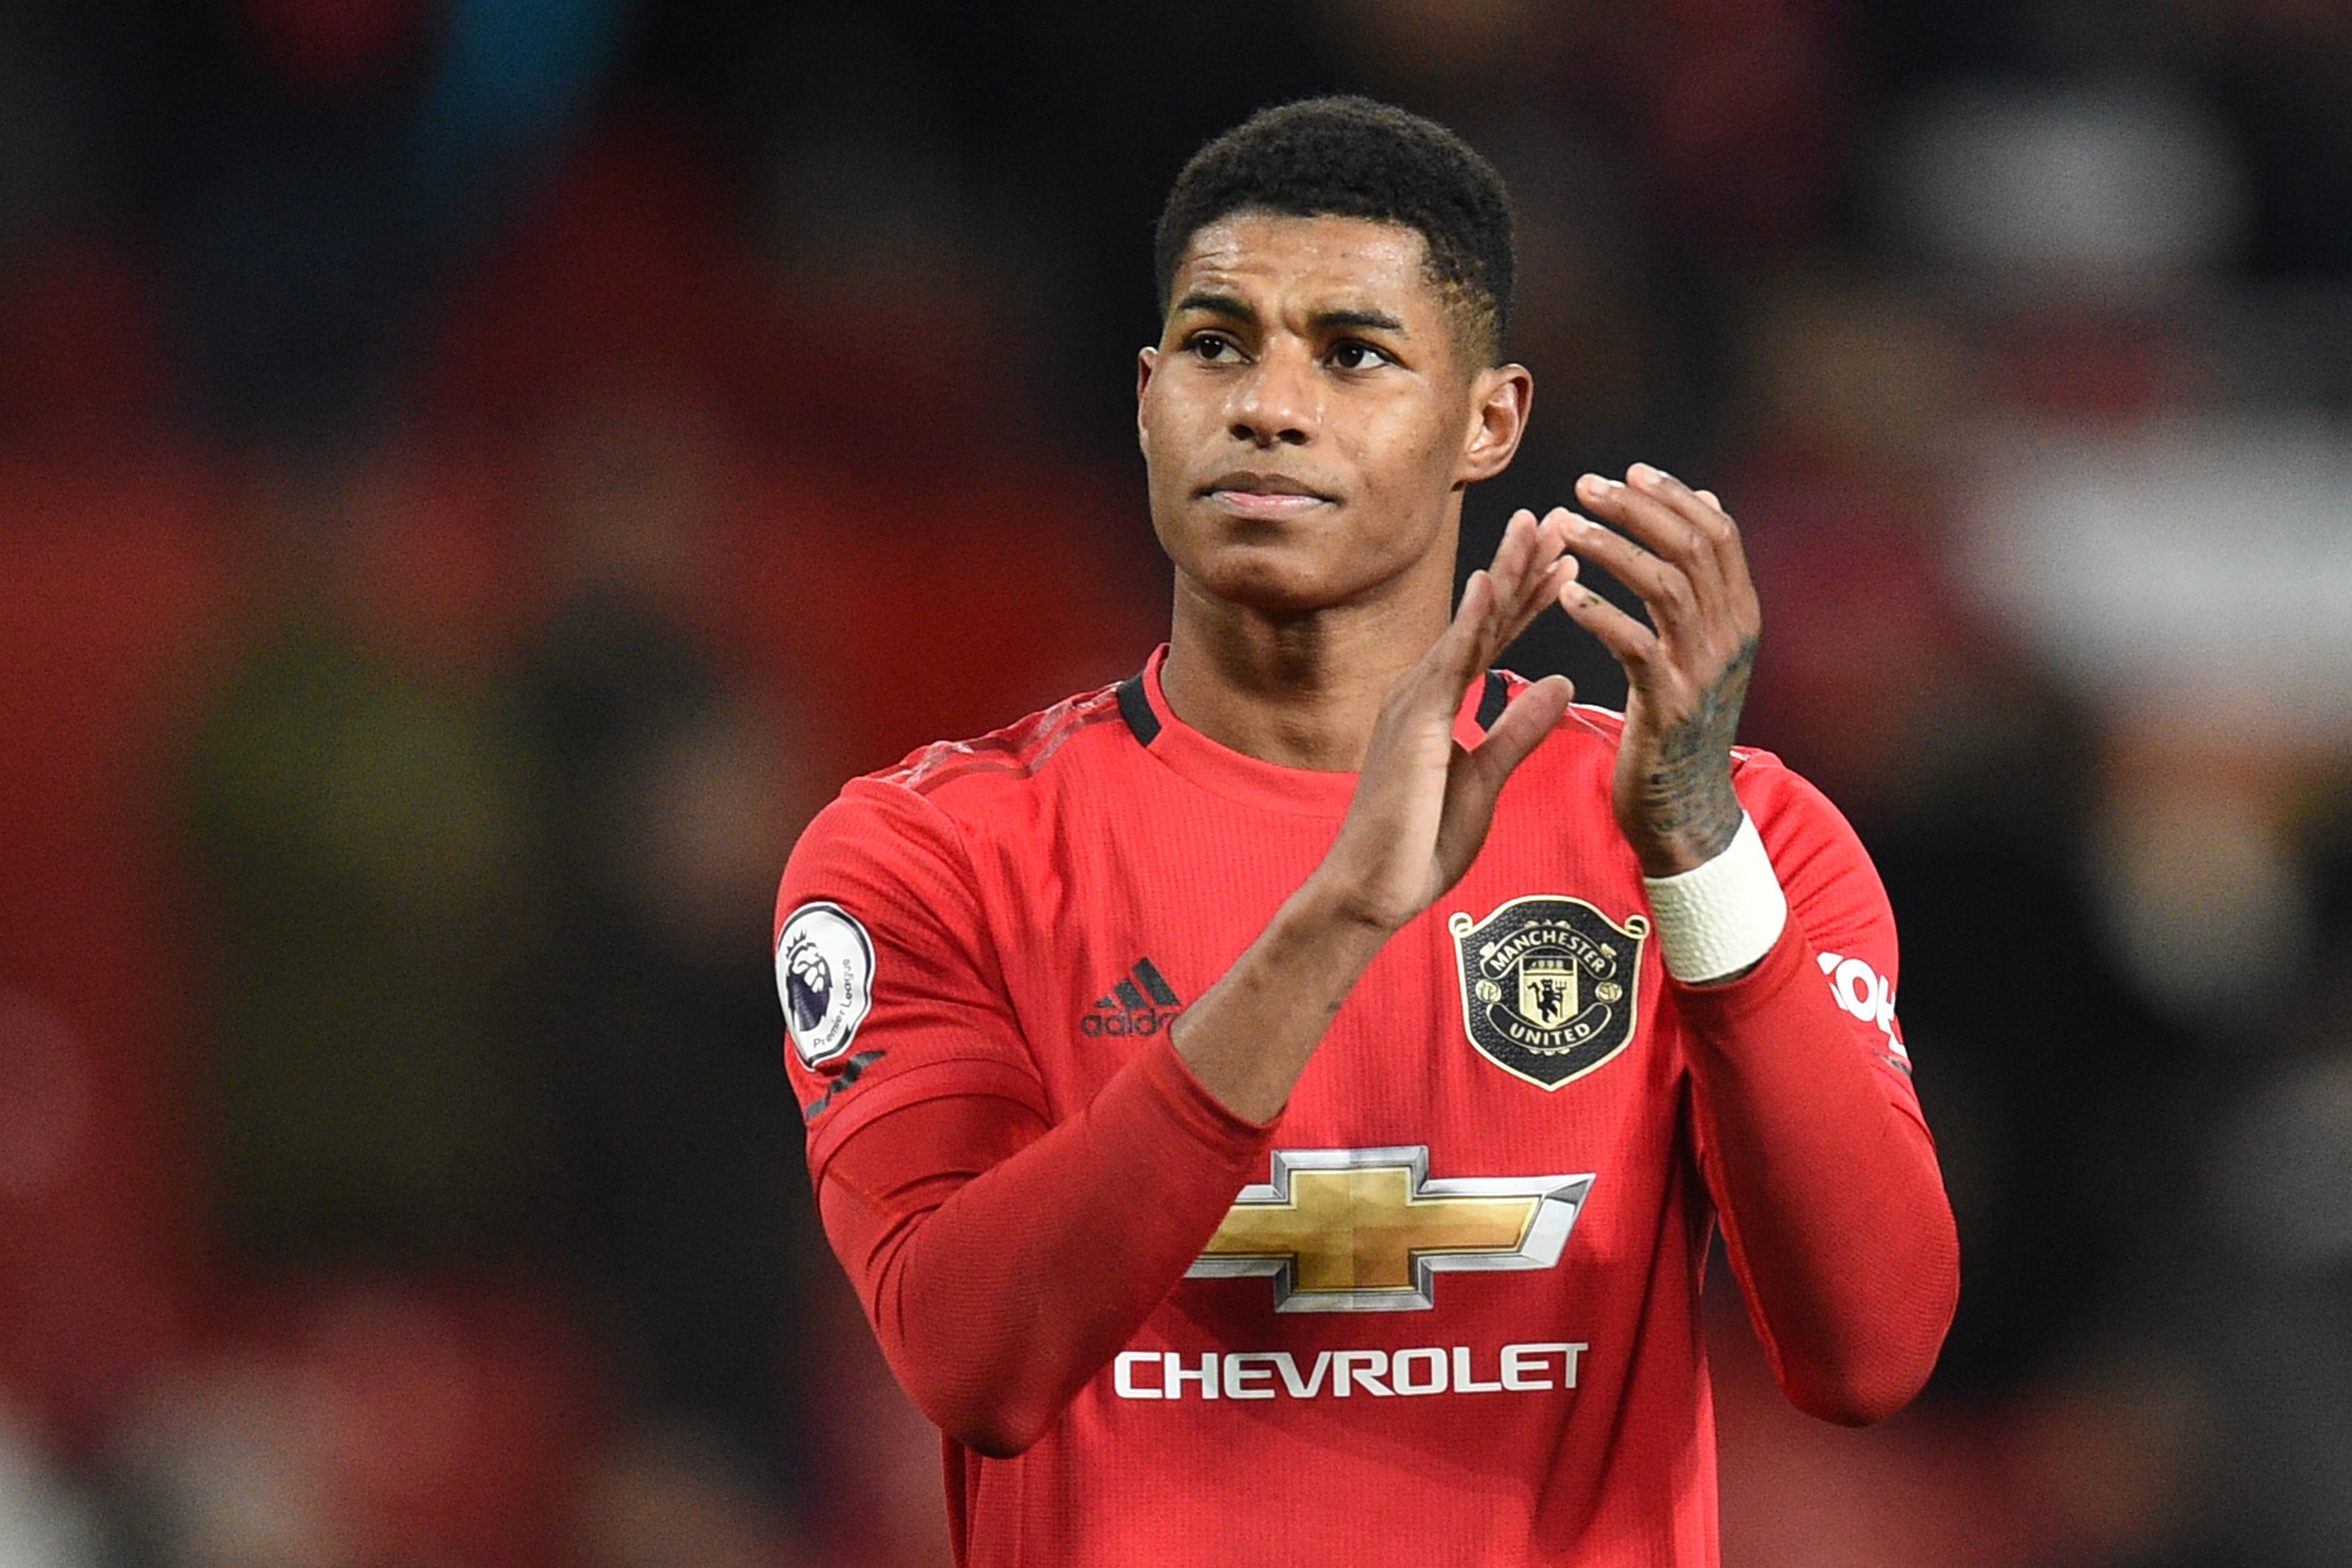 Marcus Rashford Pens Letter That Saves Uk Meal Voucher Program The Washington Post